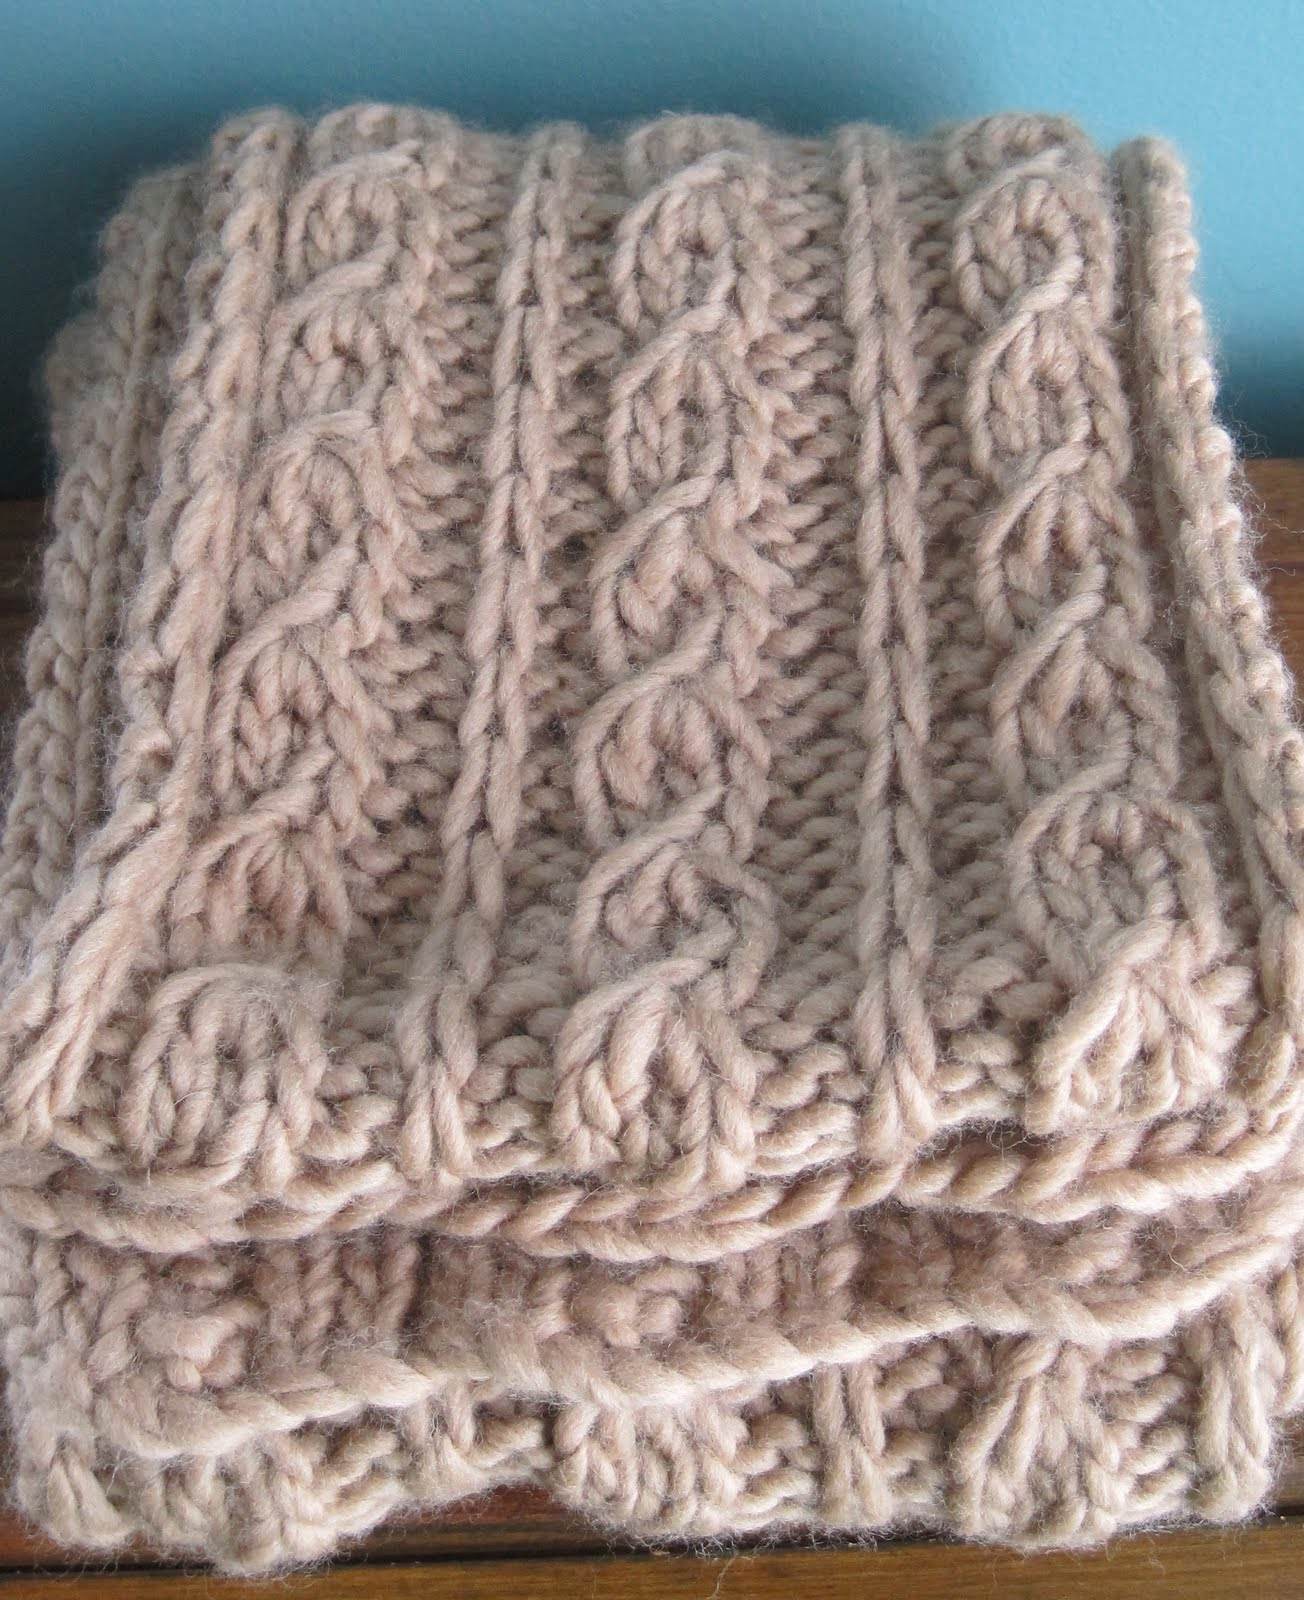 Knitting Pattern For Infinity Scarf With Bulky Yarn : Discoknits: Lofty Scarf #1